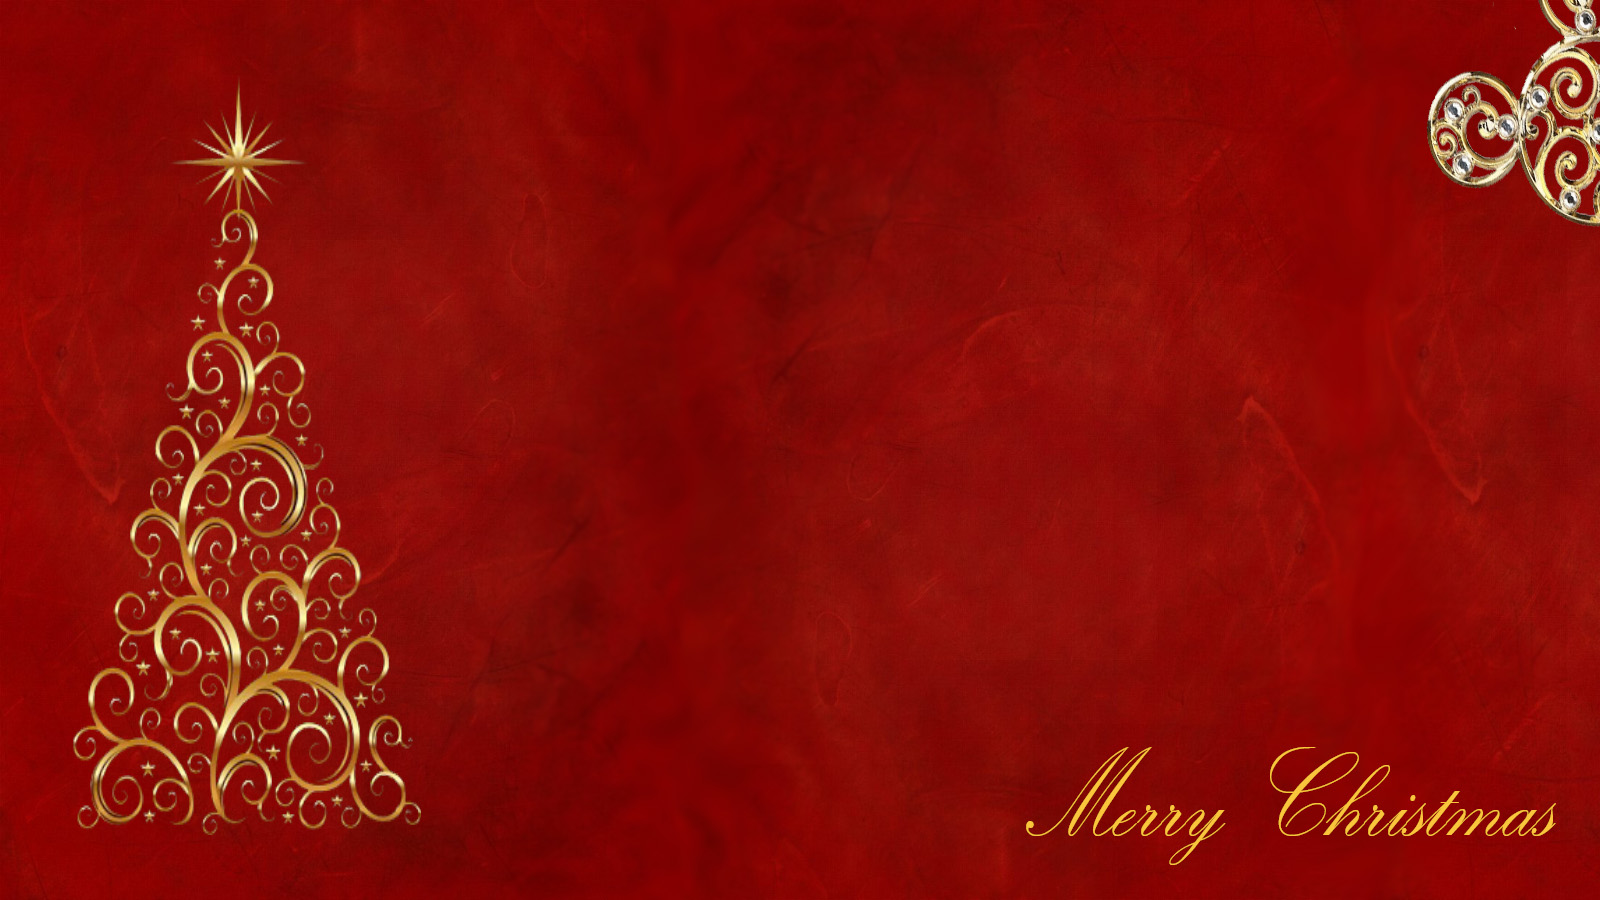 Christmas powerpoint templates free download gallery templates famous free holiday powerpoint templates photos entry level resume amazing powerpoint holiday templates free contemporary example alramifo Gallery